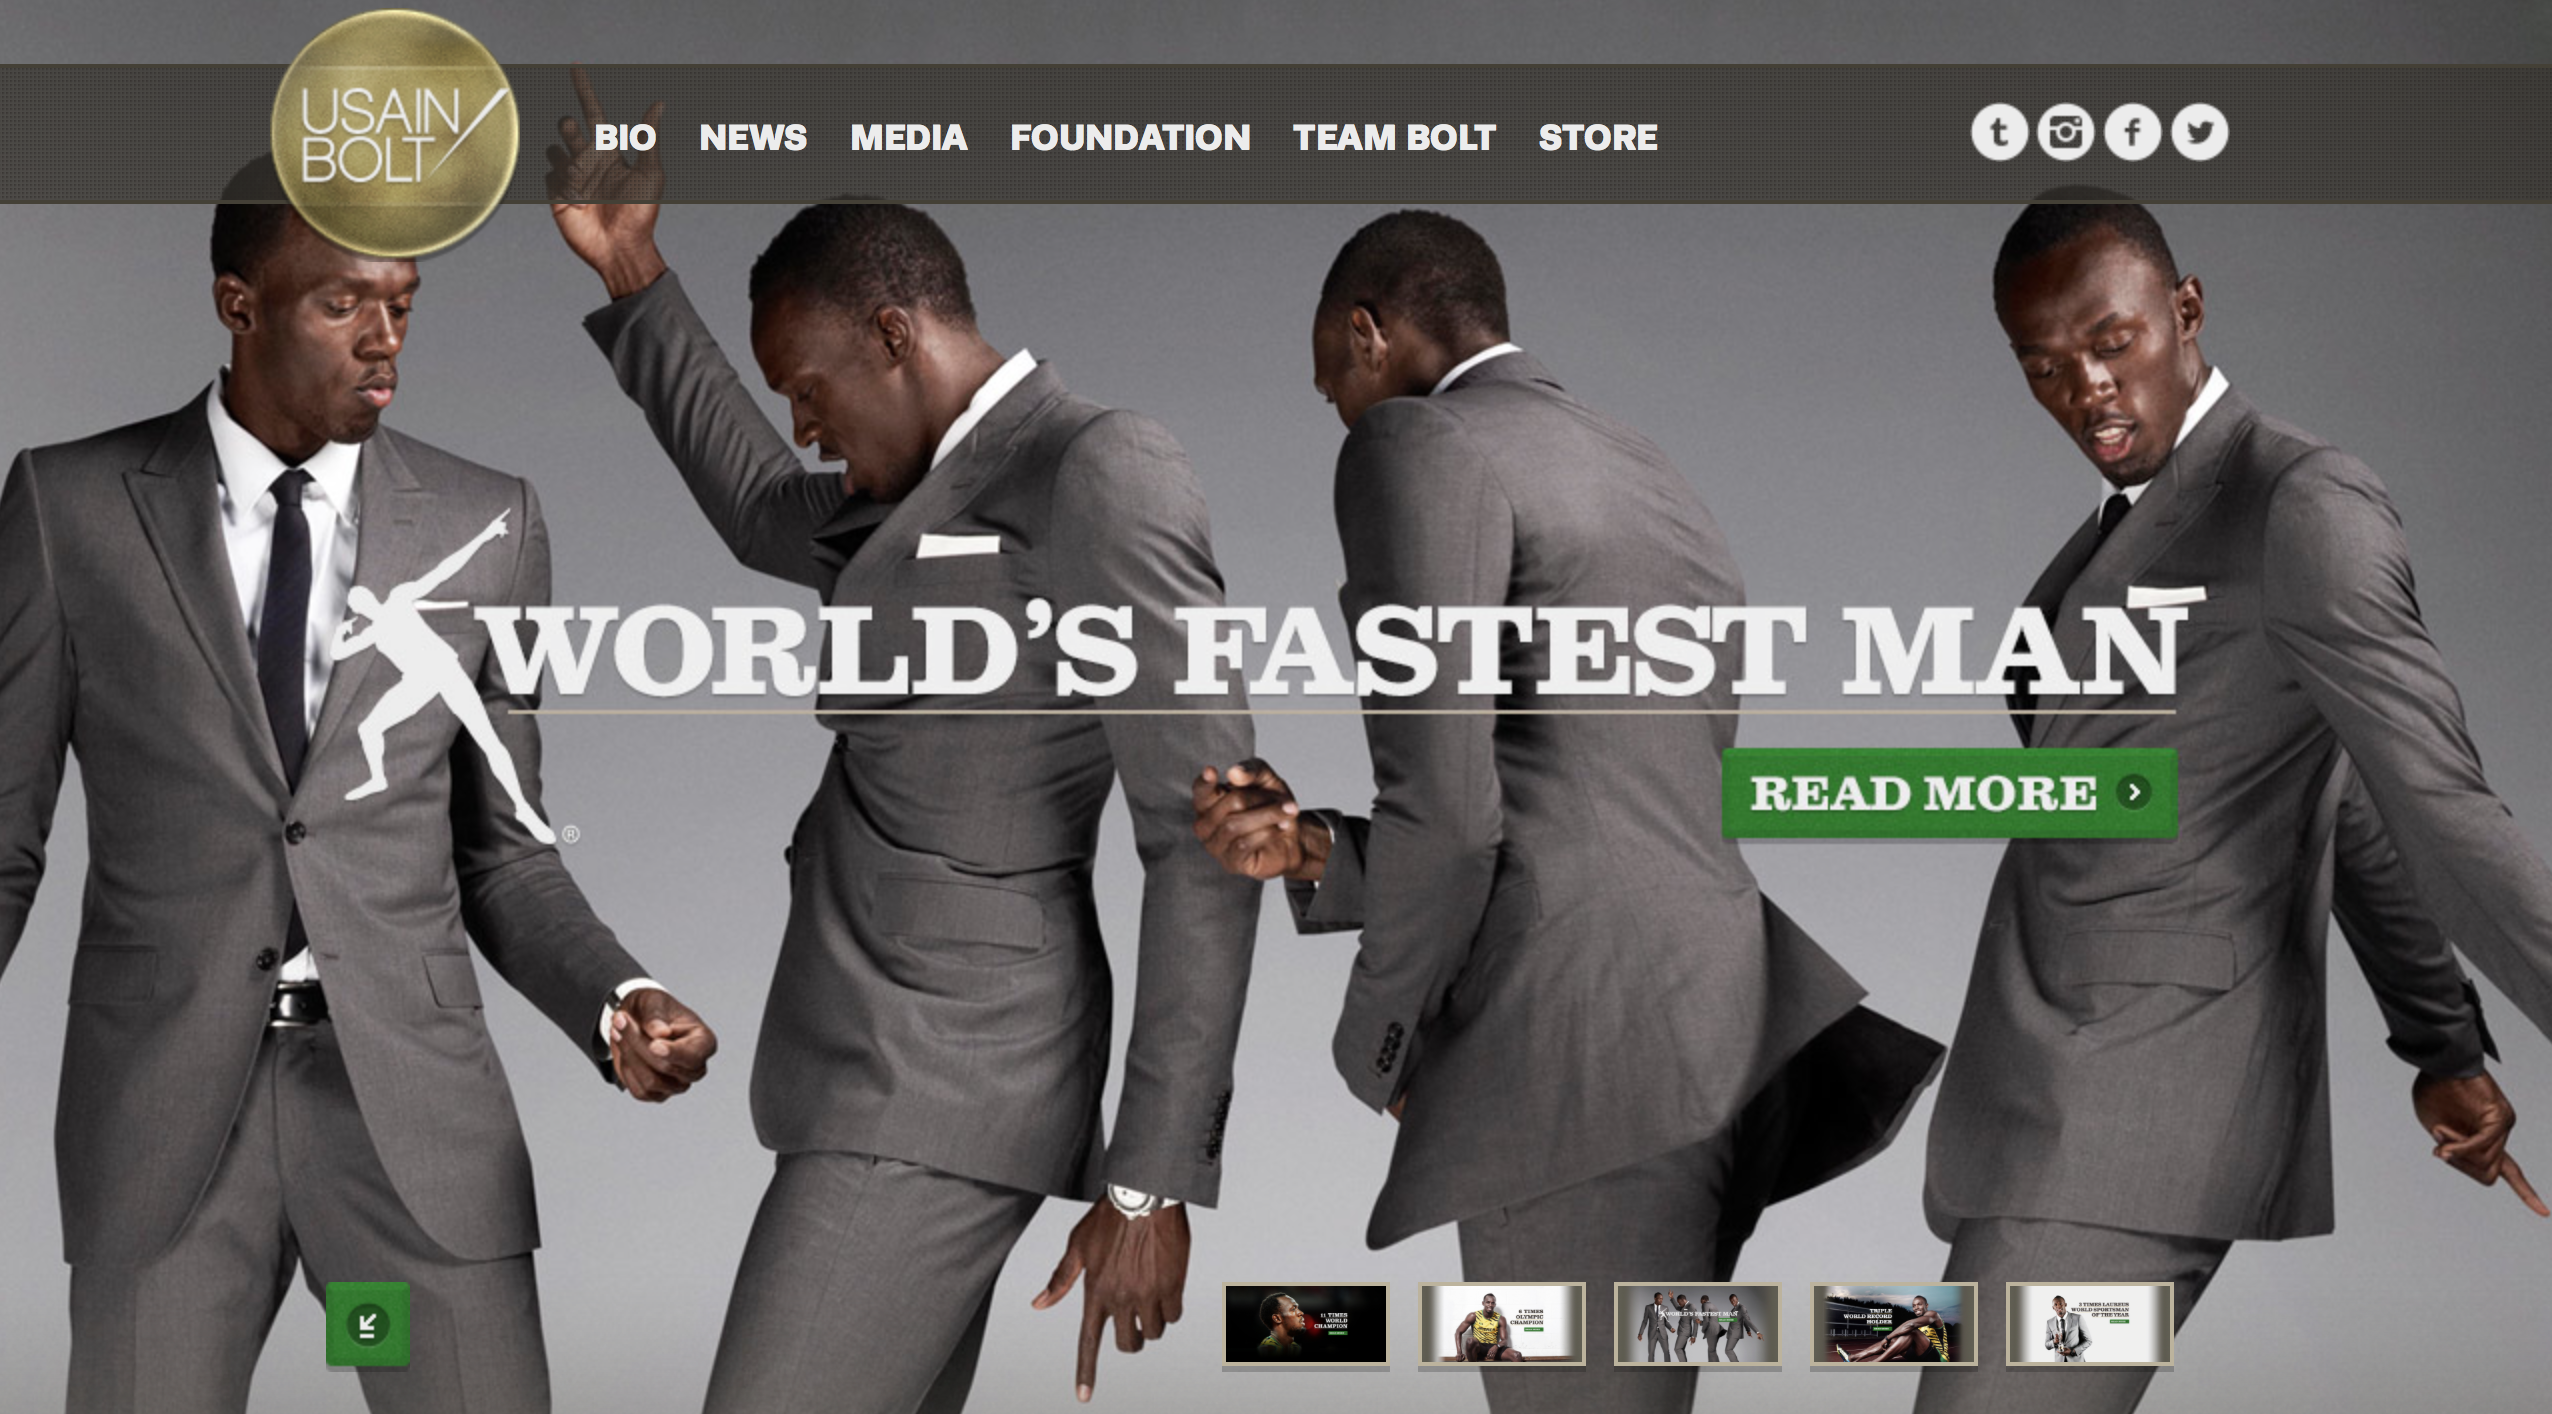 Usain Bolt The Entertaining Business Of Being The Best